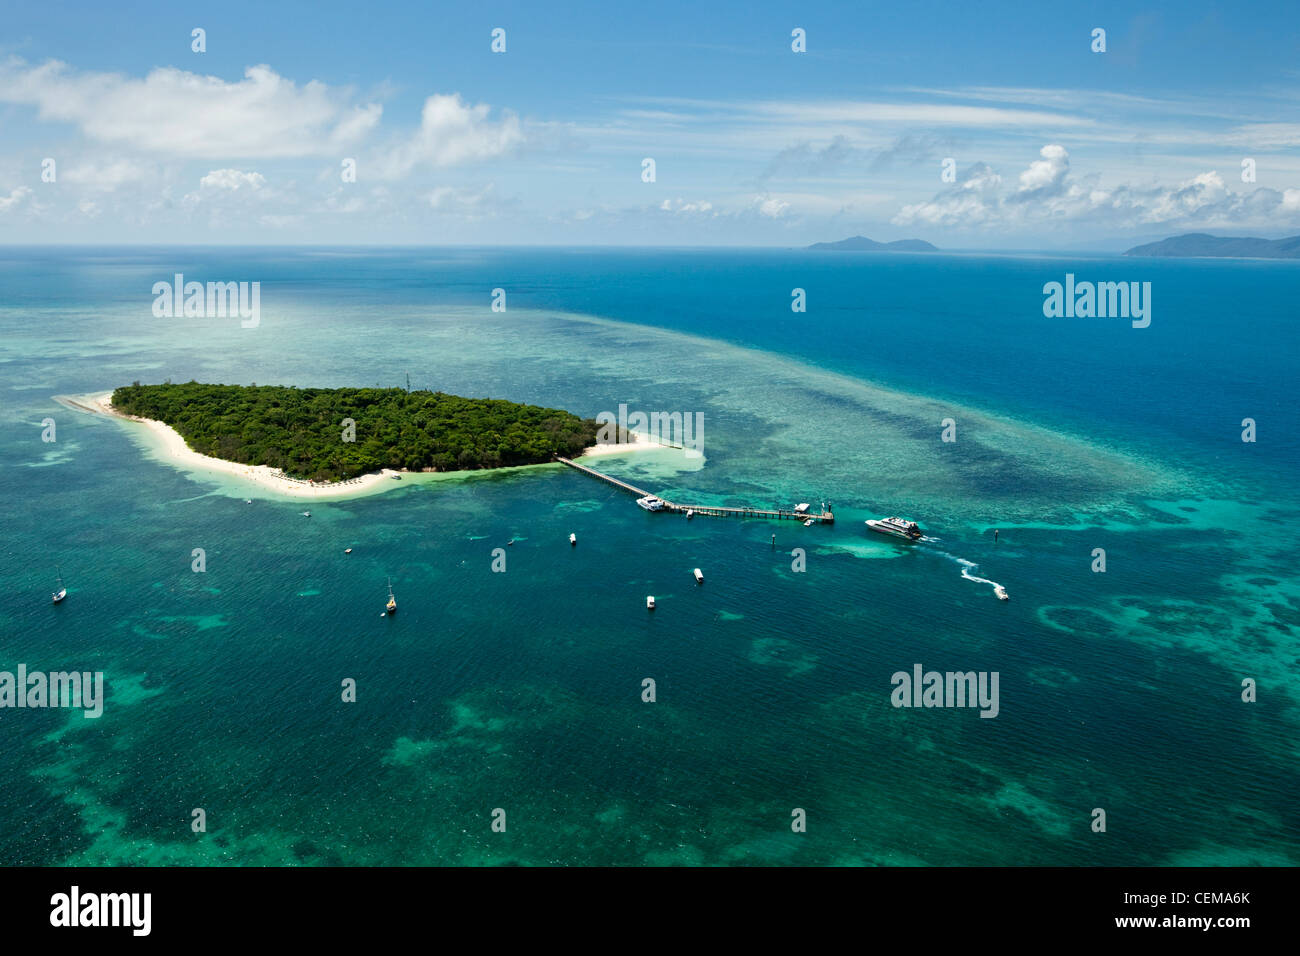 Aerial view of Green Island - a coral cay near Cairns. Great Barrier Reef Marine Park, Queensland, Australia - Stock Image